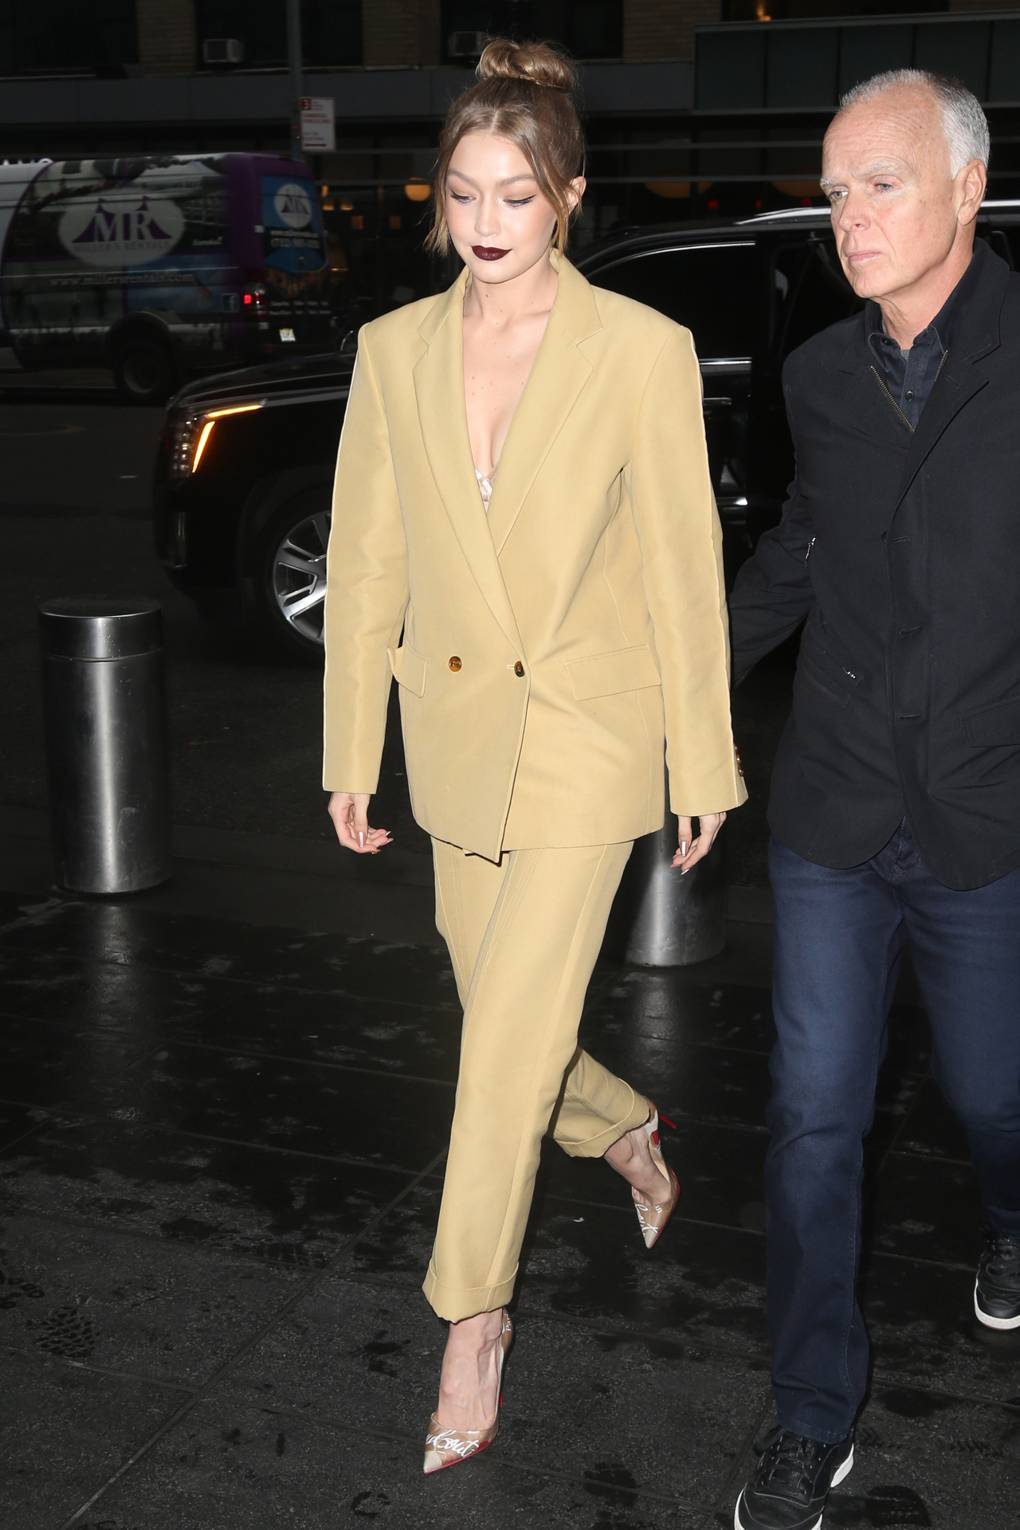 ea7364d9a7 Gigi Hadid Style Evolution In Pictures